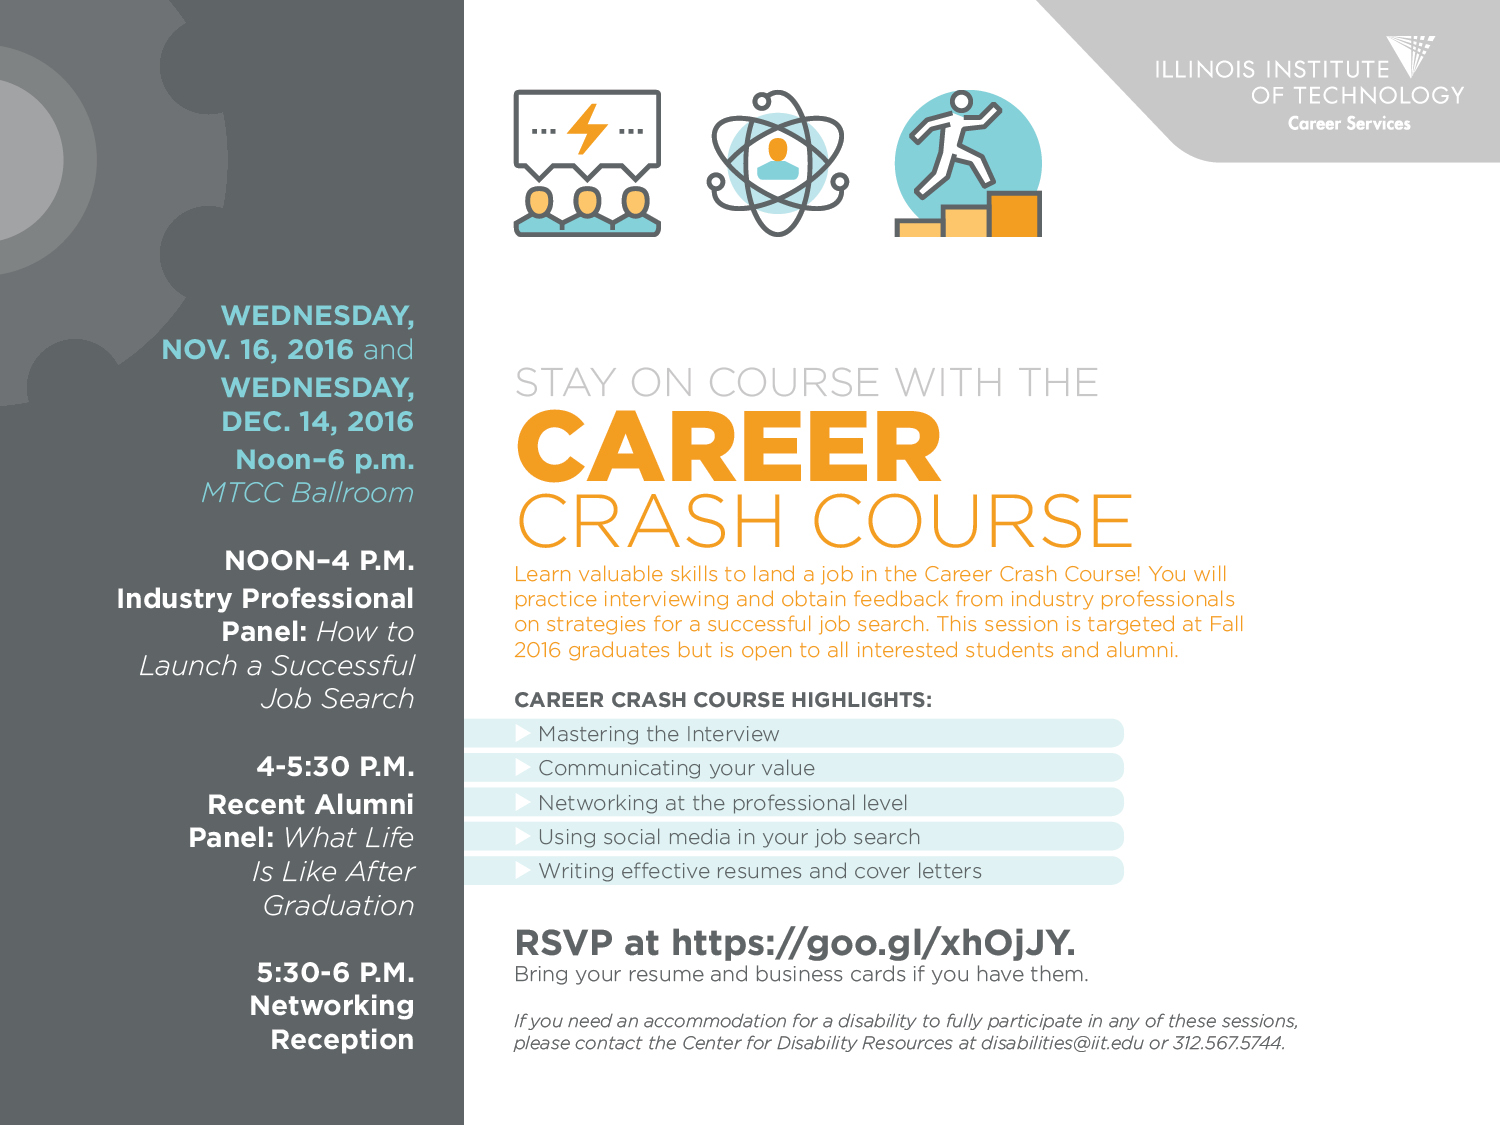 Career Crash Course | Illinois Institute of Technology